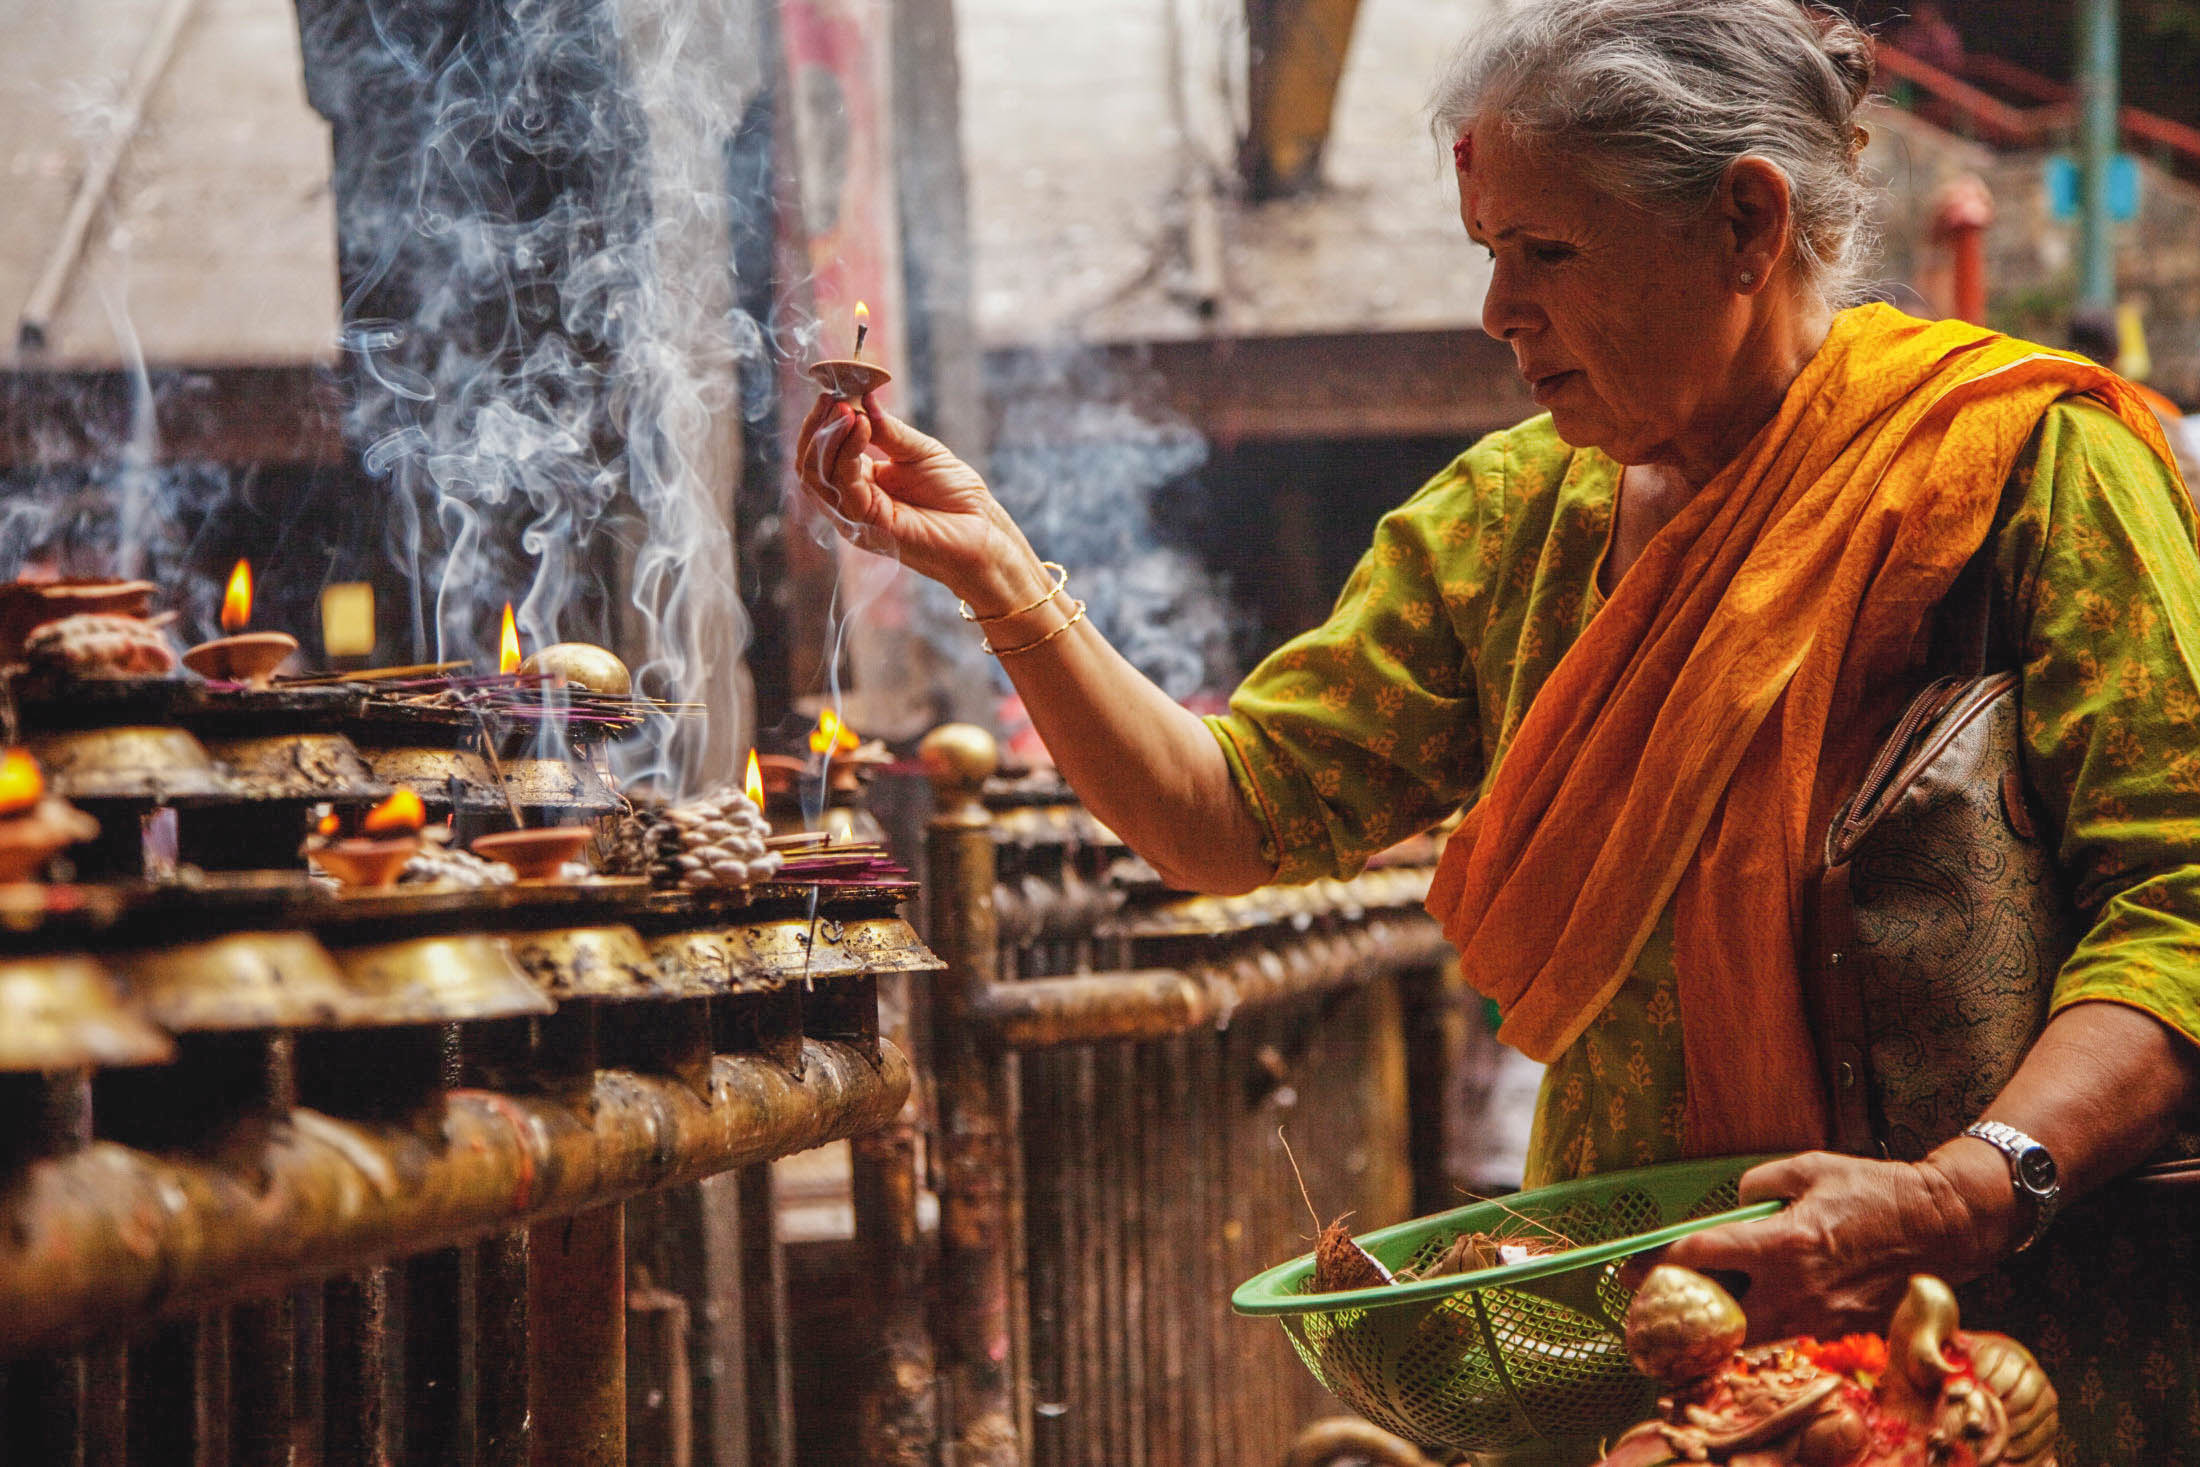 A Hindu worshiper lights candles to gain blessing from Hindu gods at a temple in Nepal. Photo from IMB Photo Library.